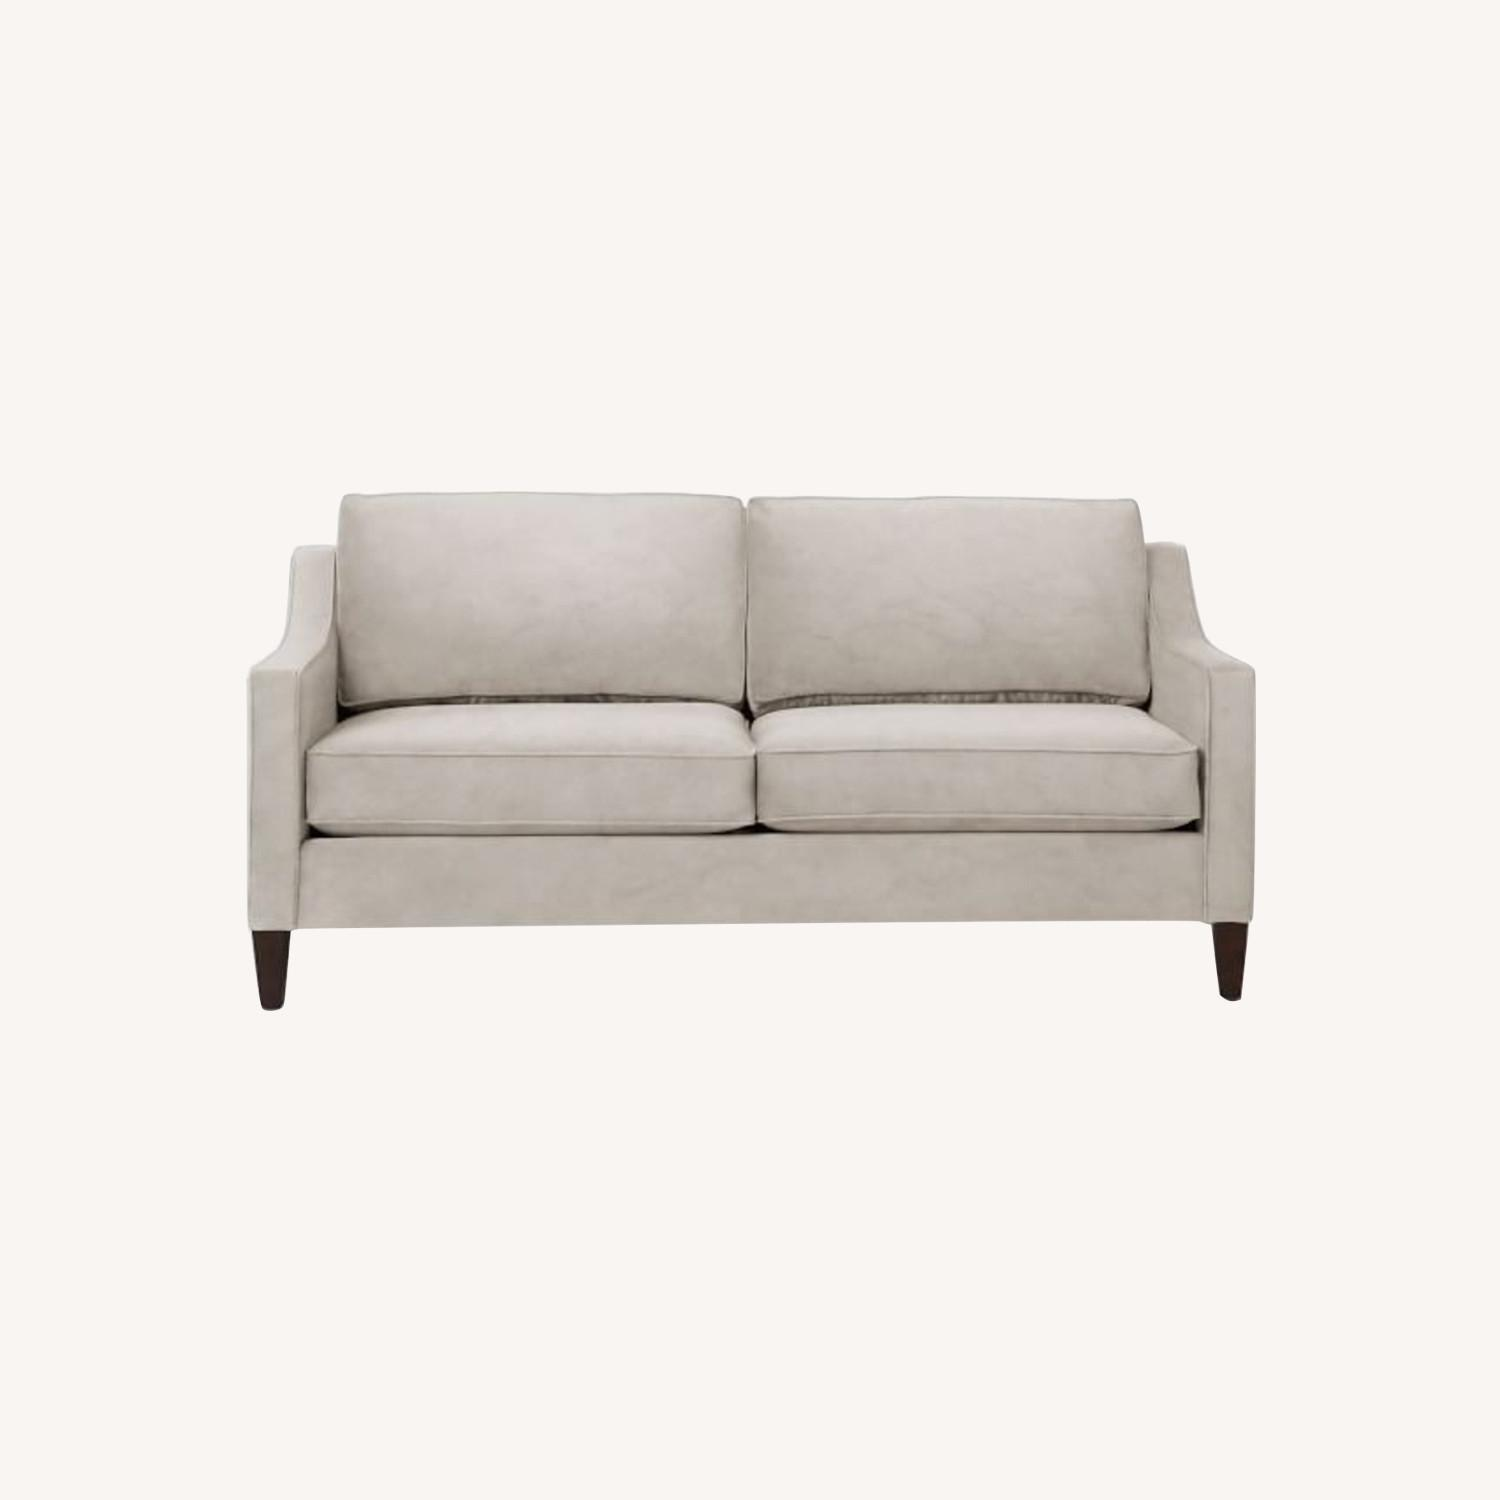 West Elm Piadge Sofa - image-0